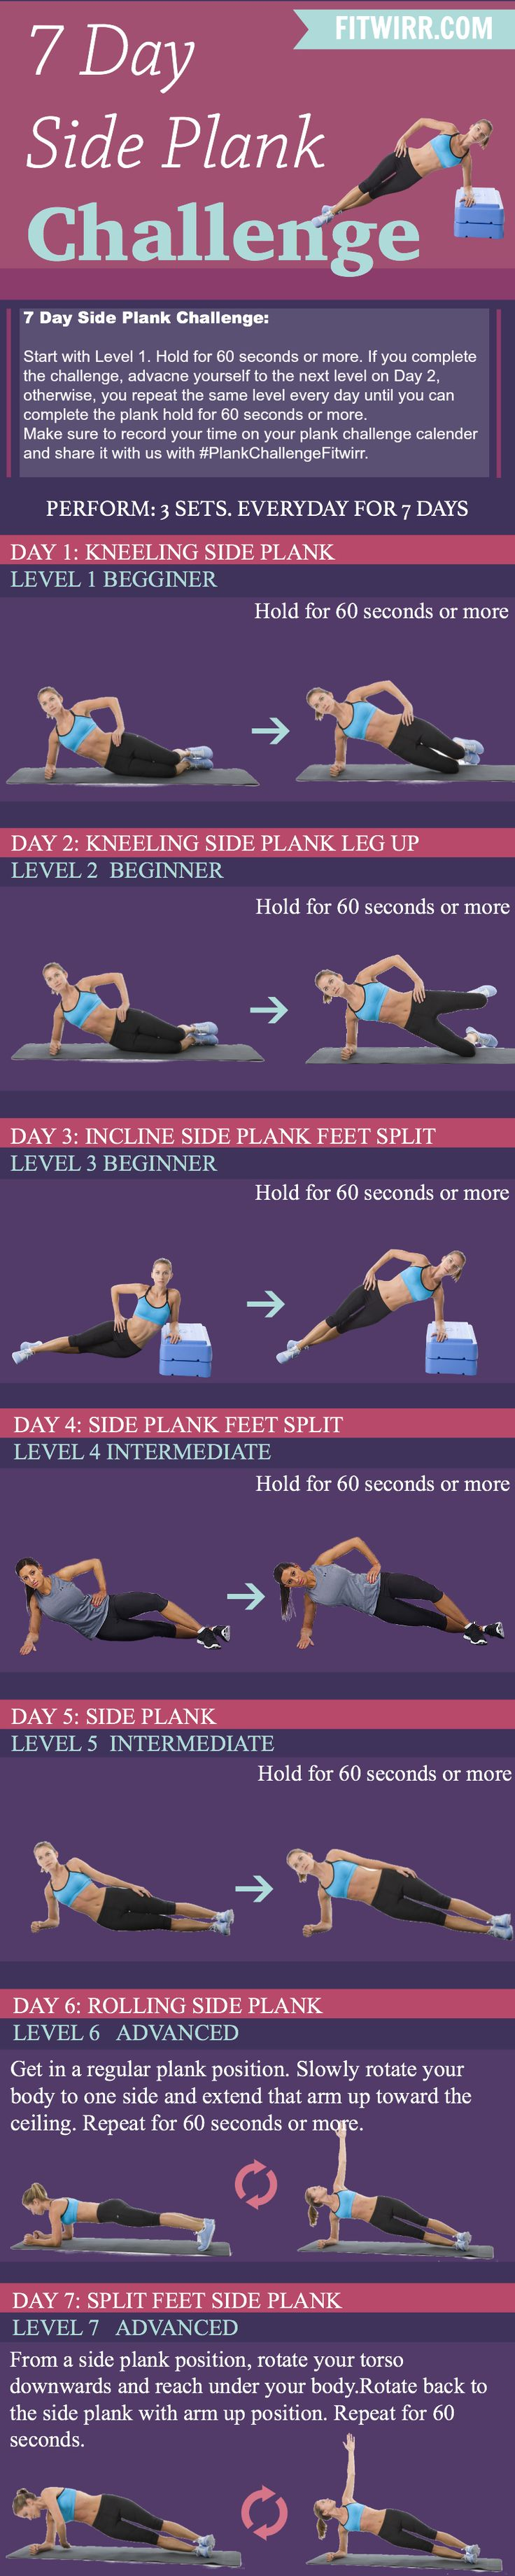 7 Day Side Plank Challenge to Burn Fat From the Midsection and Create the Defined, Sexy Abs